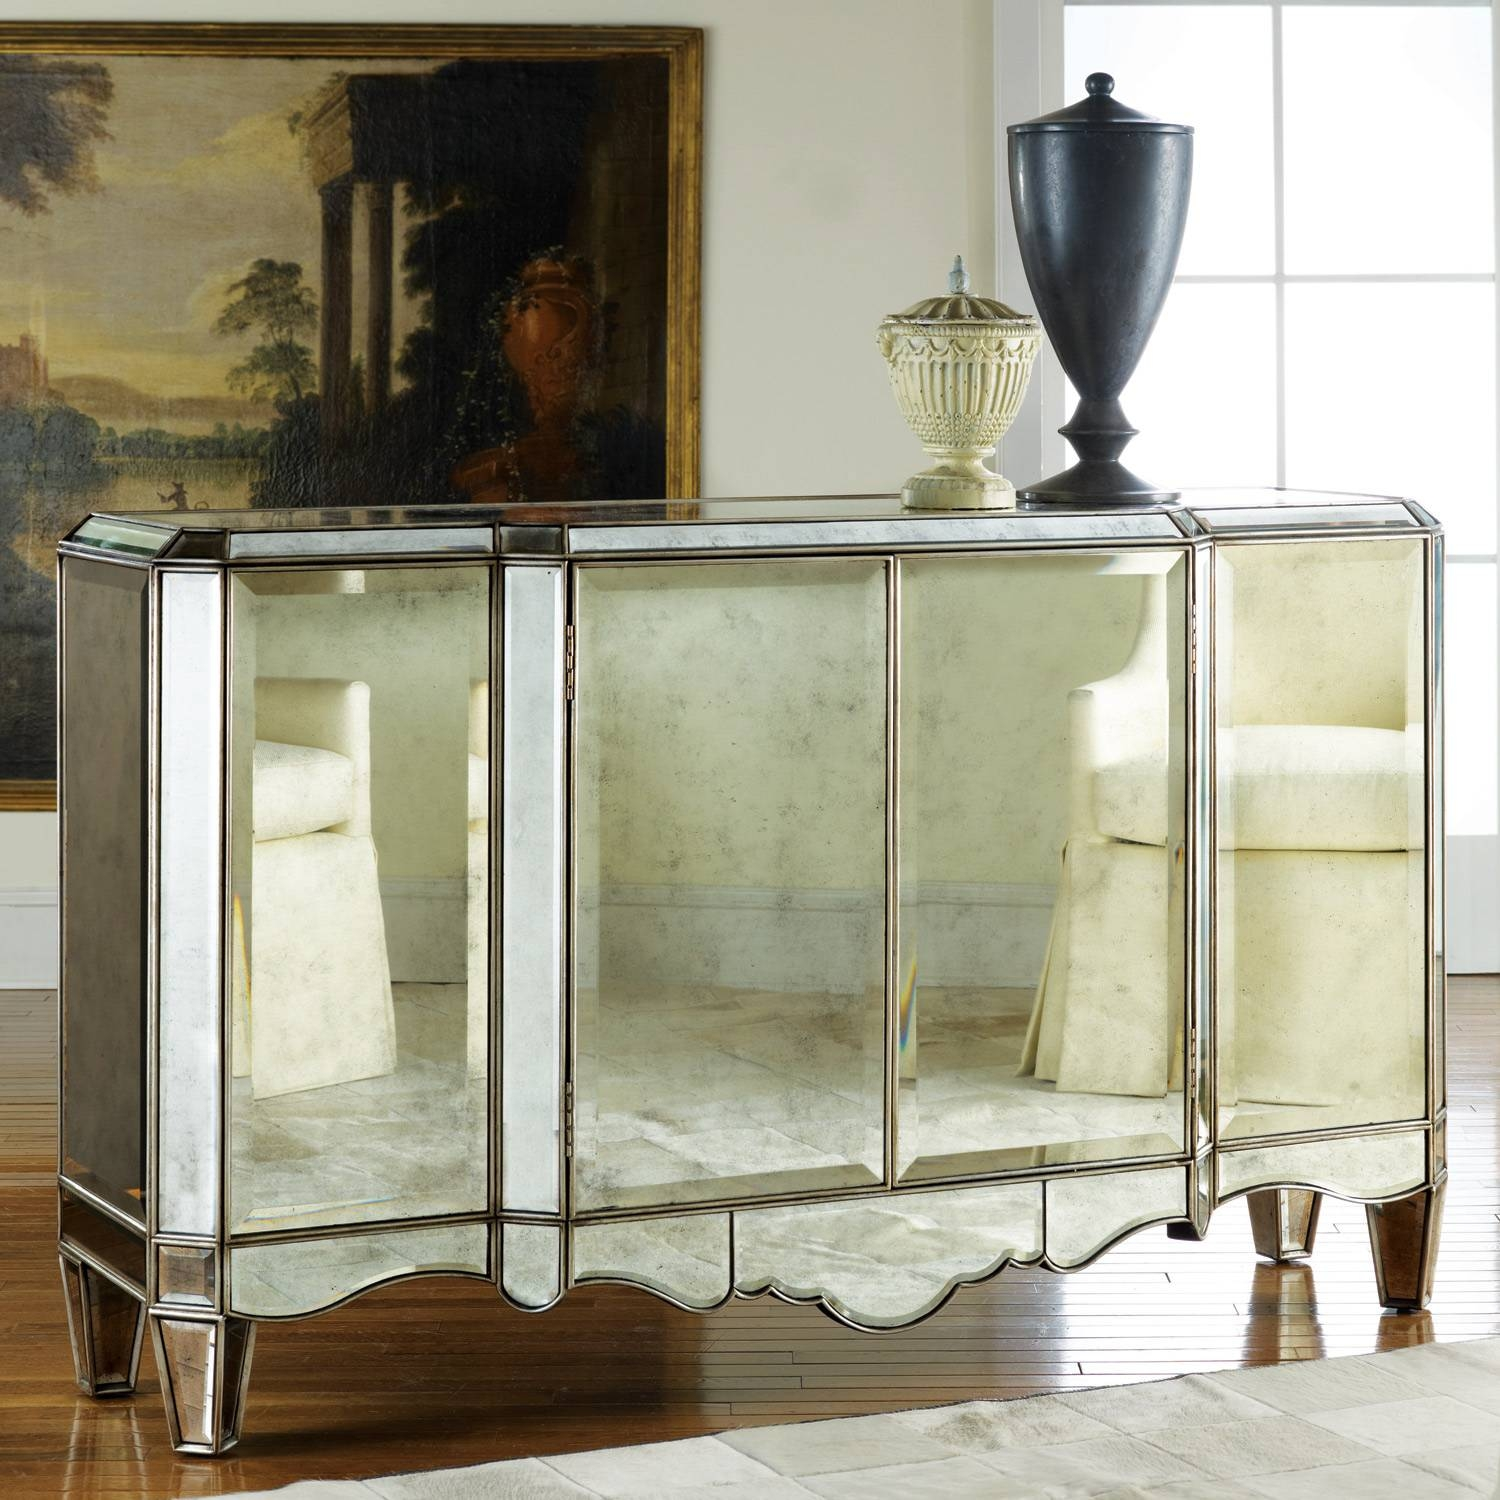 Modern History Home Mirrored Sideboard with regard to Mirror Sideboards (Image 10 of 15)